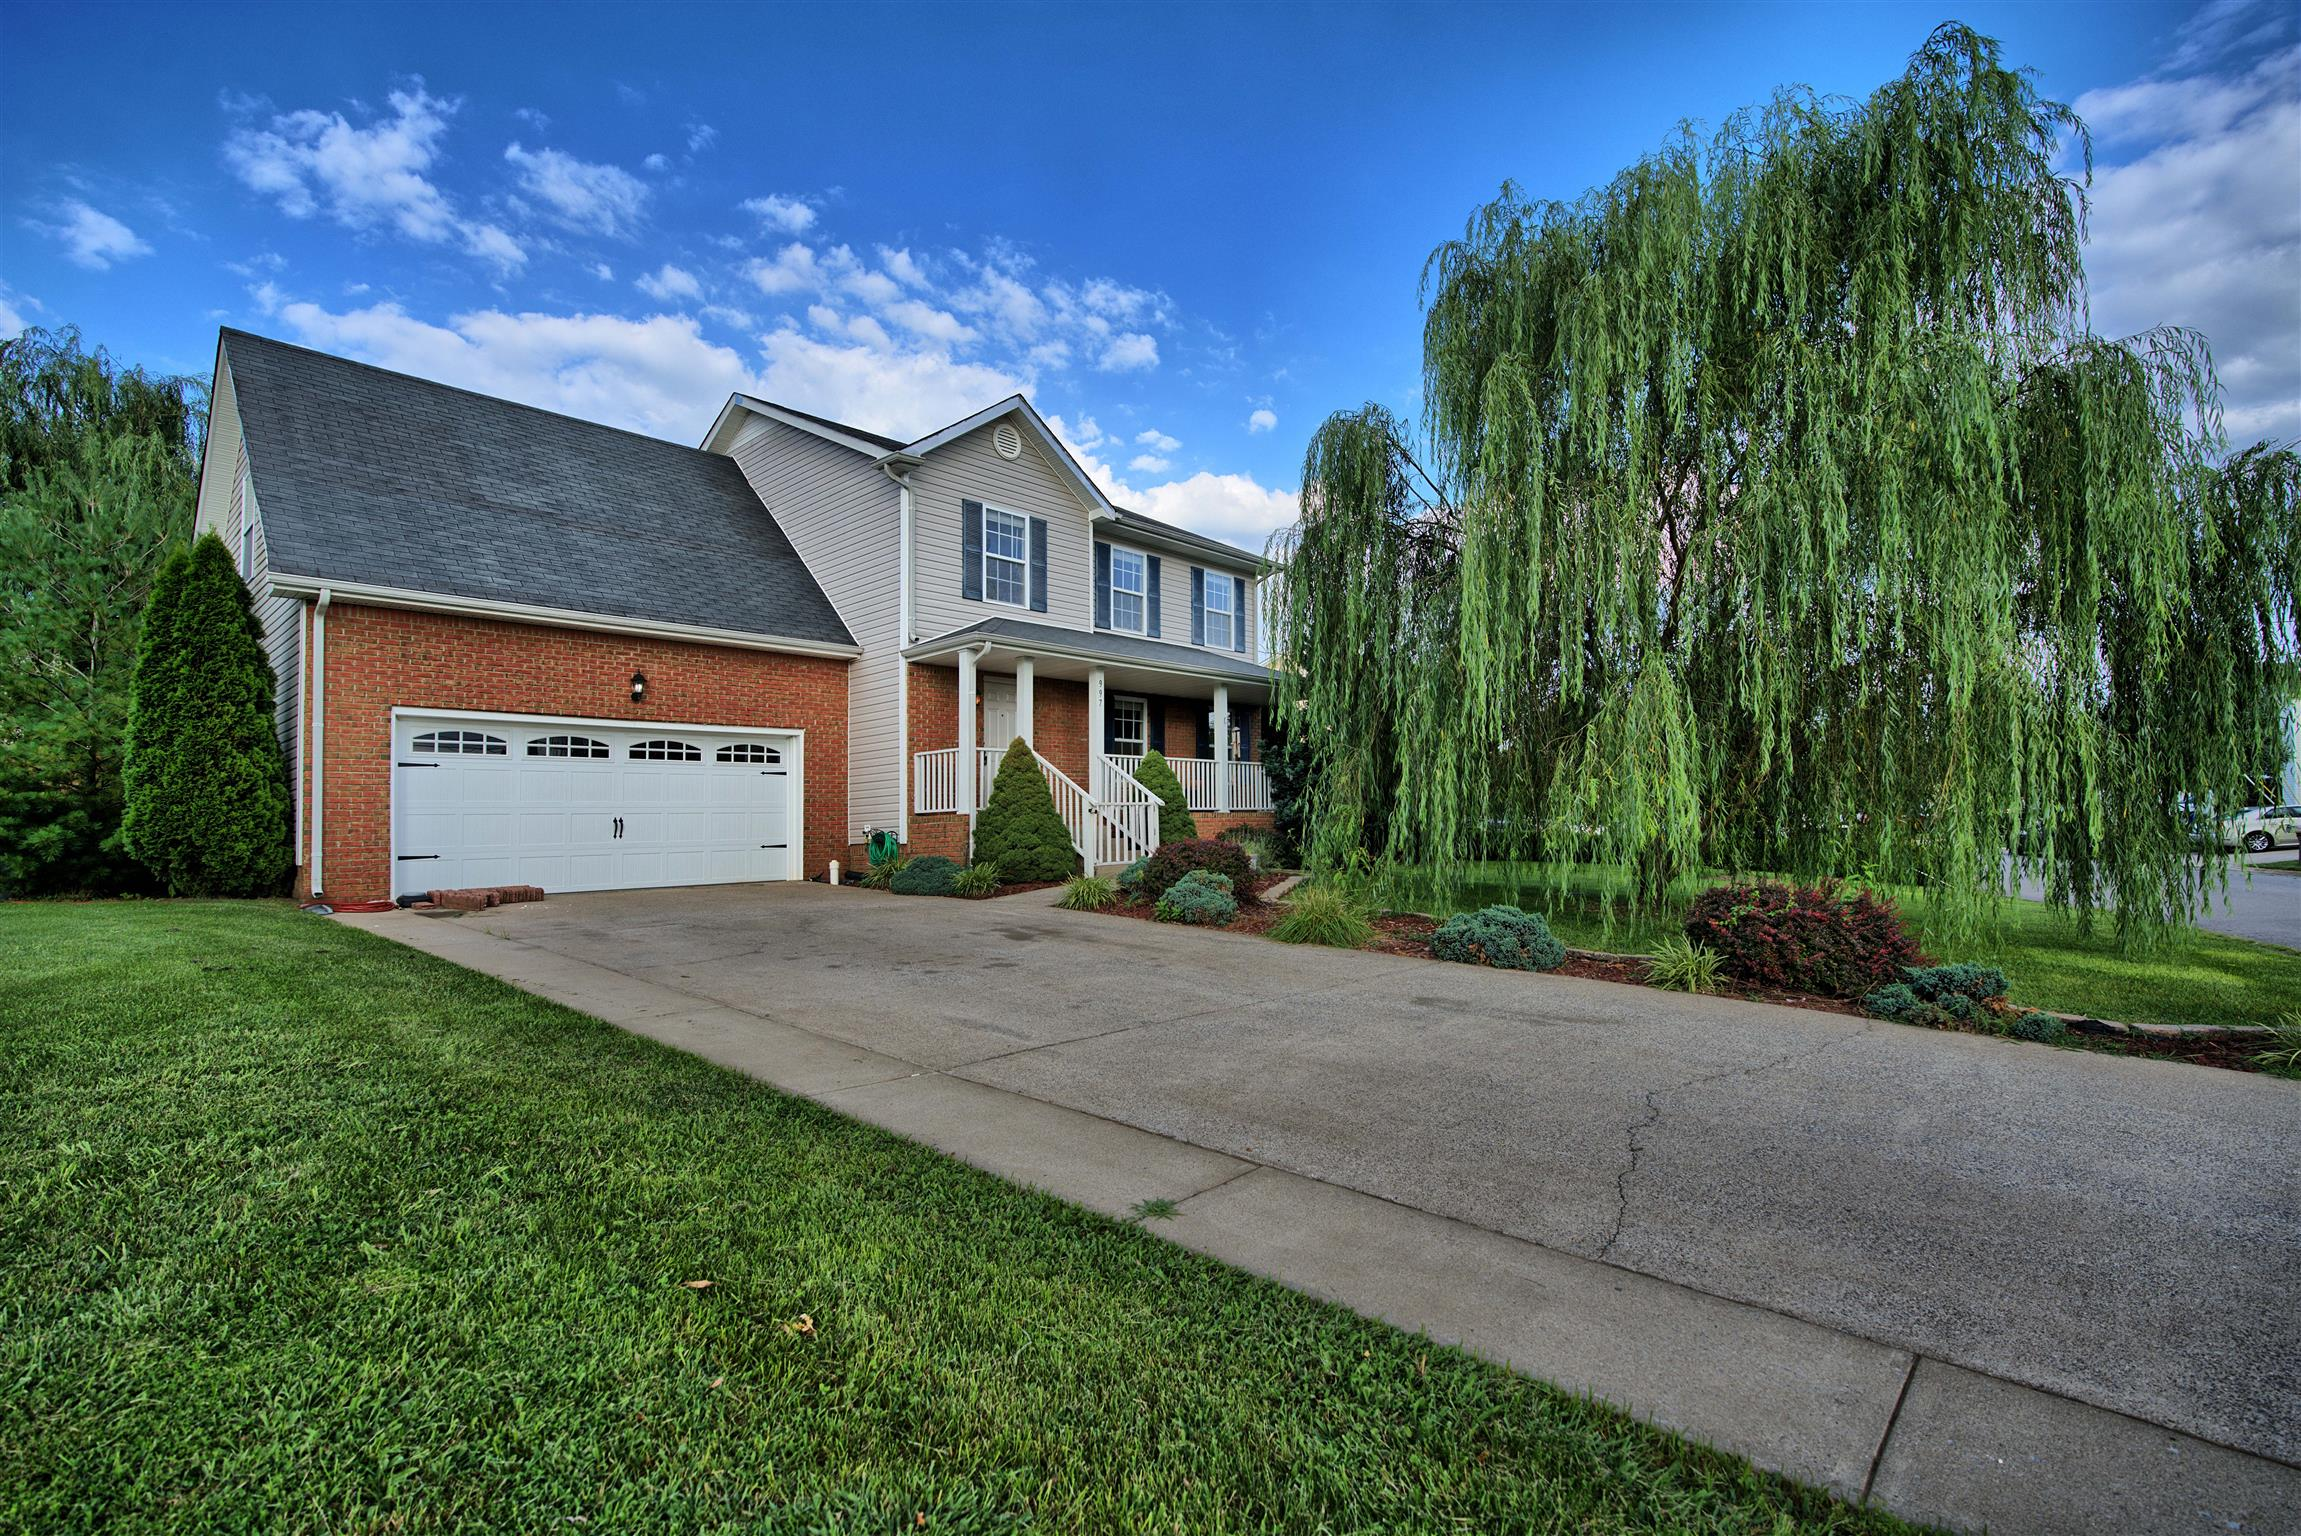 997 Silty Dr, Clarksville, TN 37042 - Clarksville, TN real estate listing